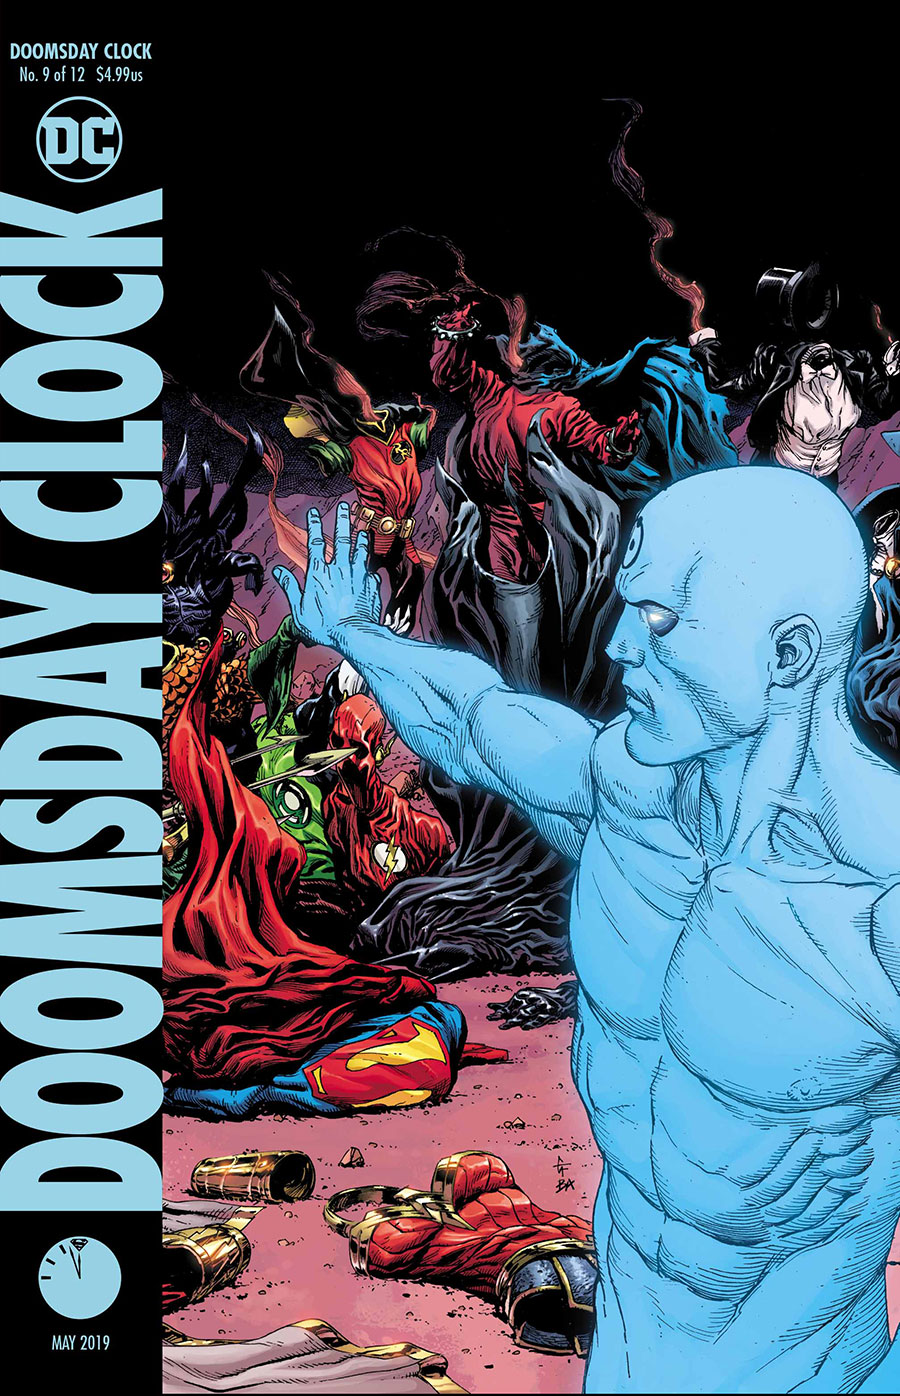 Doomsday Clock 9 Variant - DC Comics News